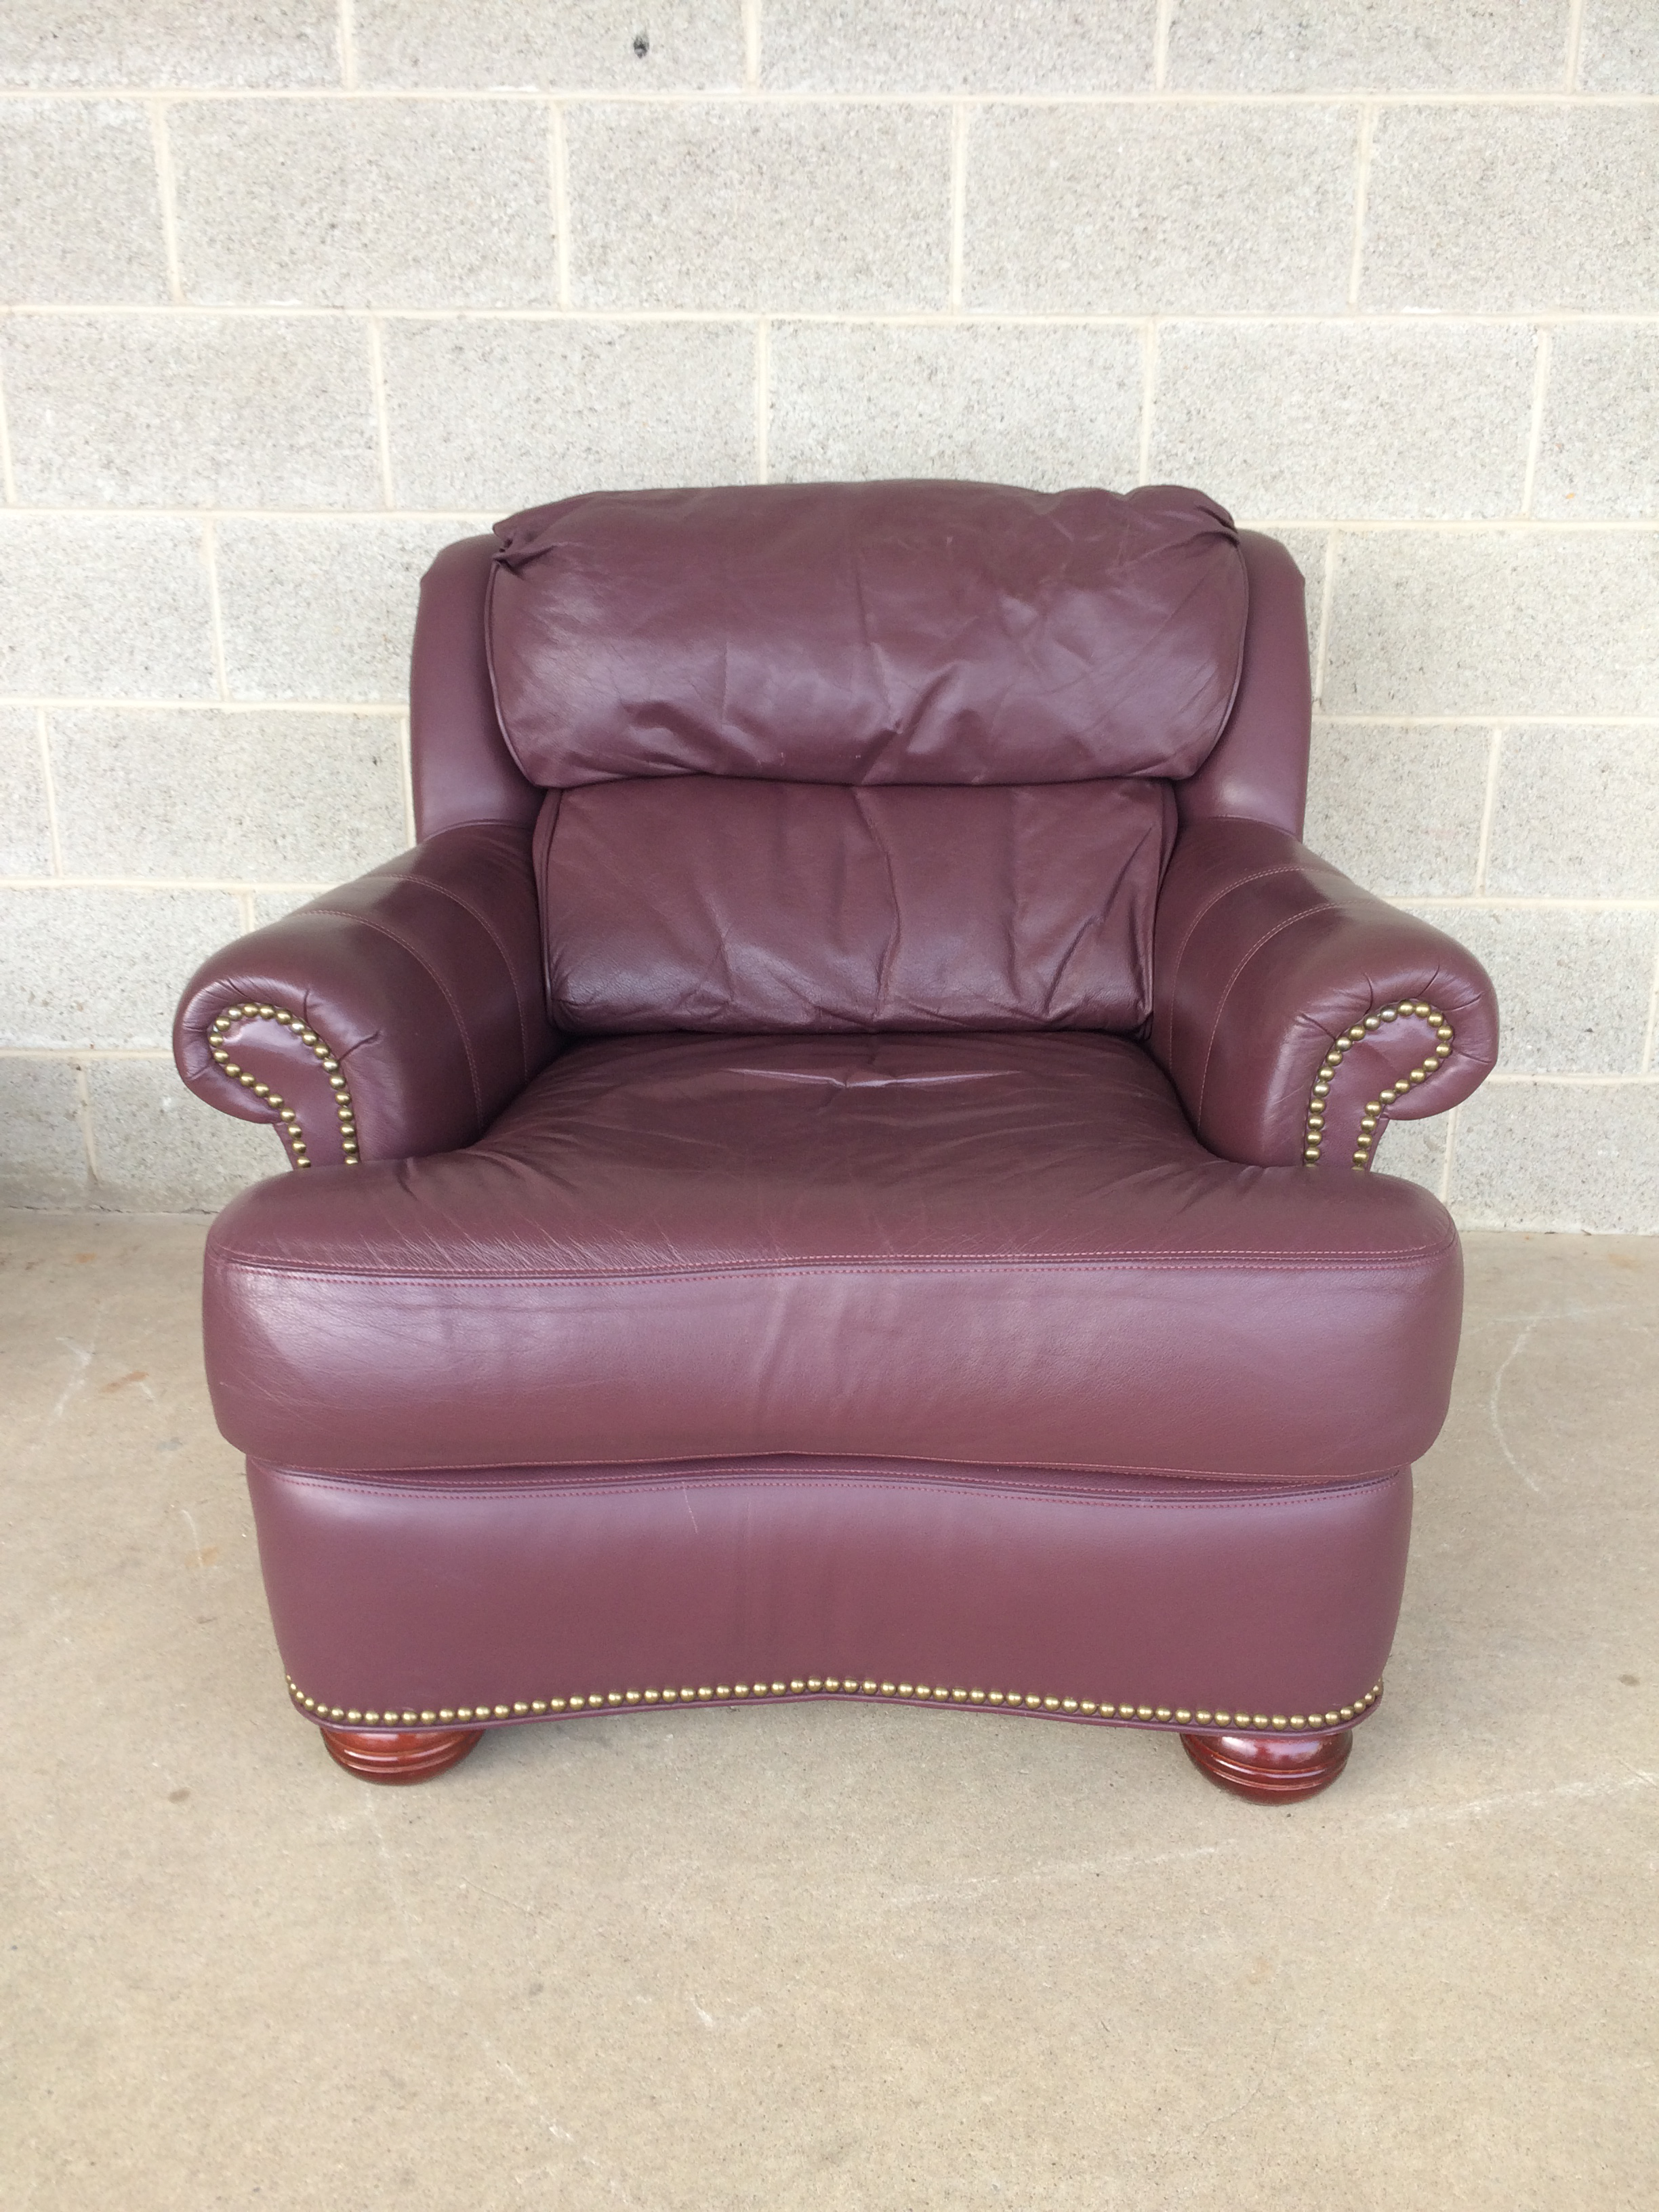 Pennsylvania House Pennsylvania House Leather Lounge Chair U0026 Ottoman For  Sale   Image 4 Of 11